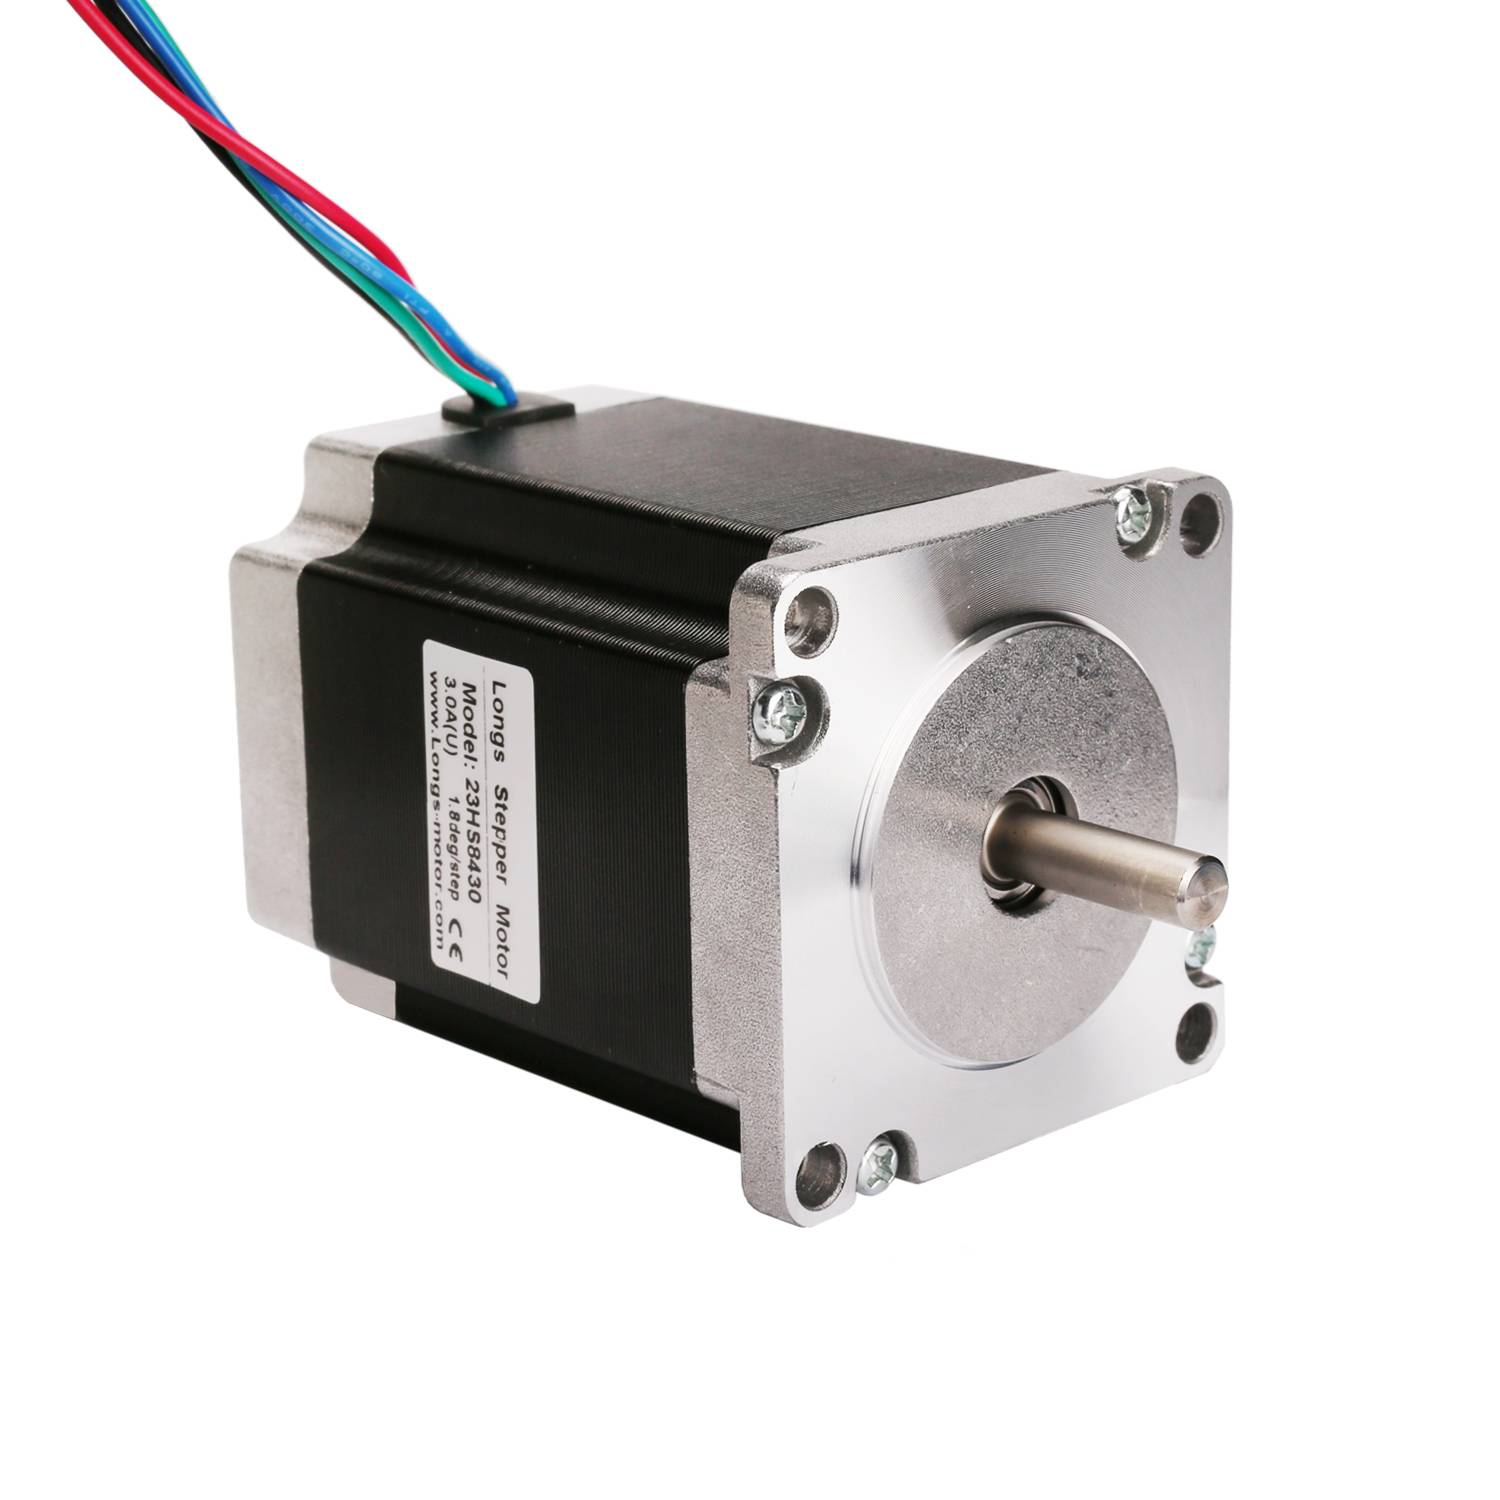 Hybride Stepper MOTOR-nema23HS Featured Image